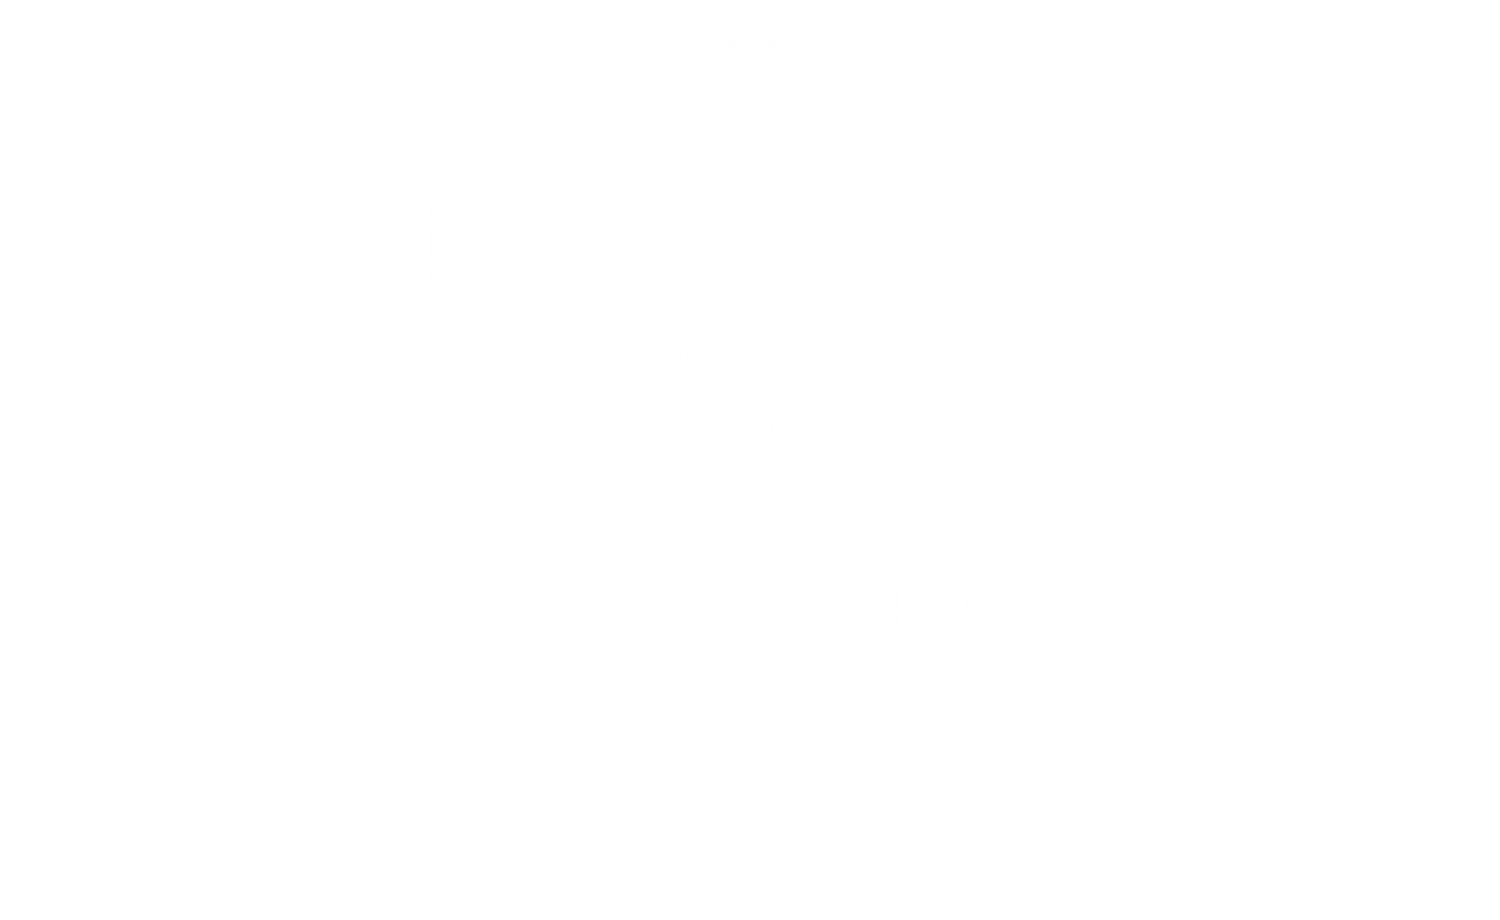 CrossFit Muscle Yard